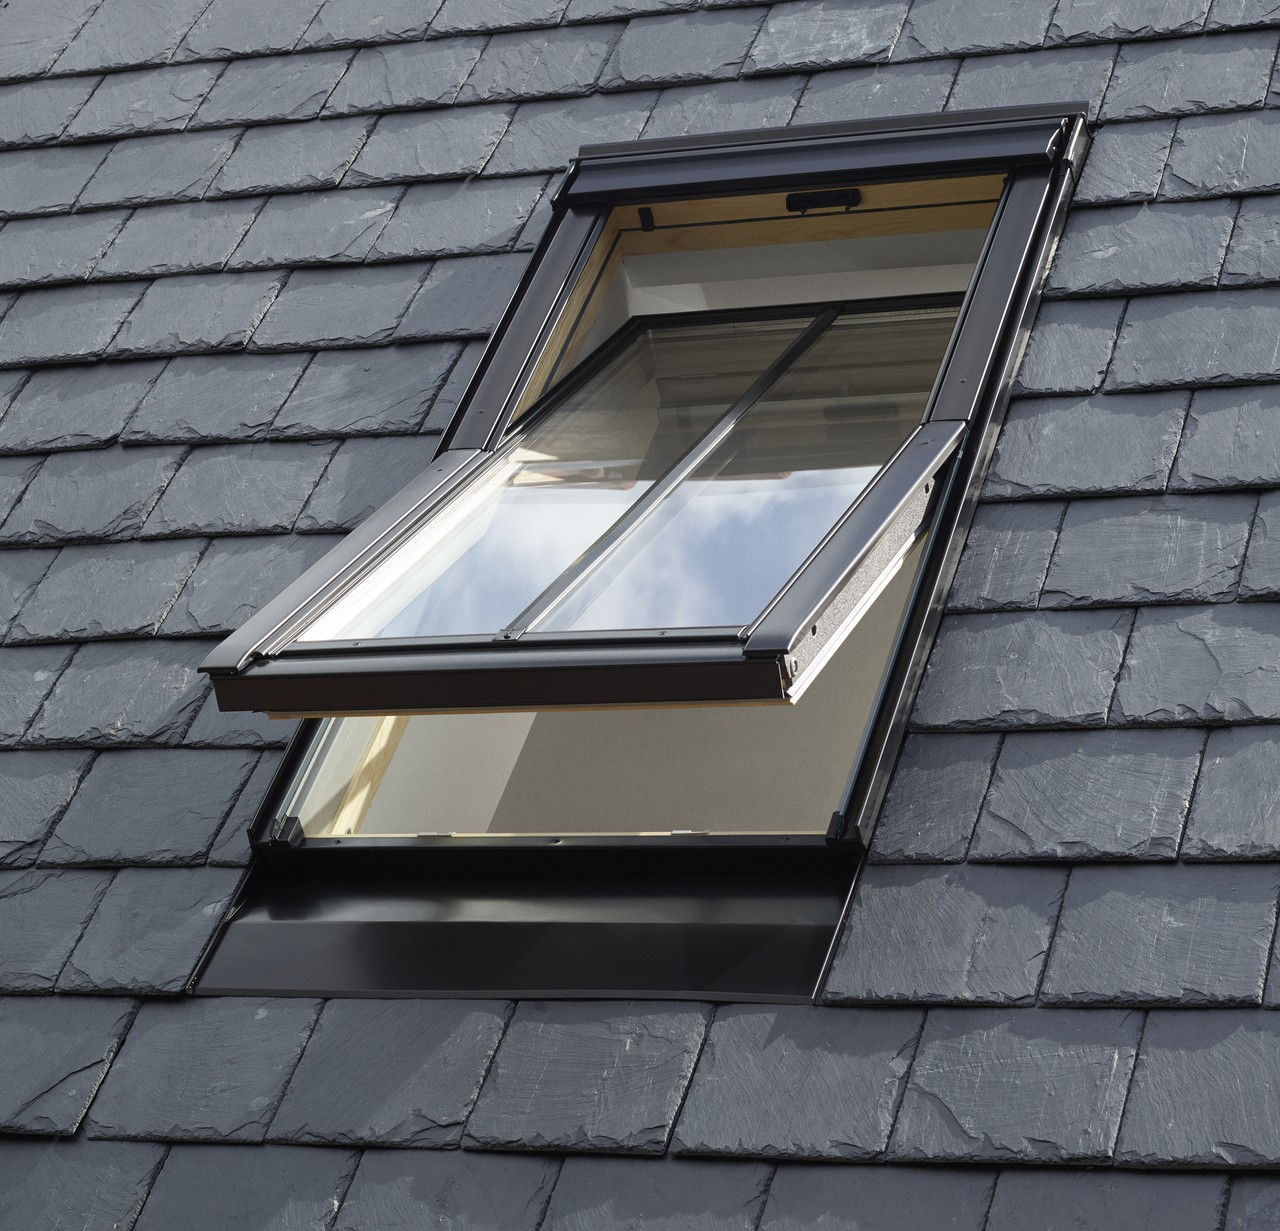 VELUX Centre Pivot conservation roof windows in position